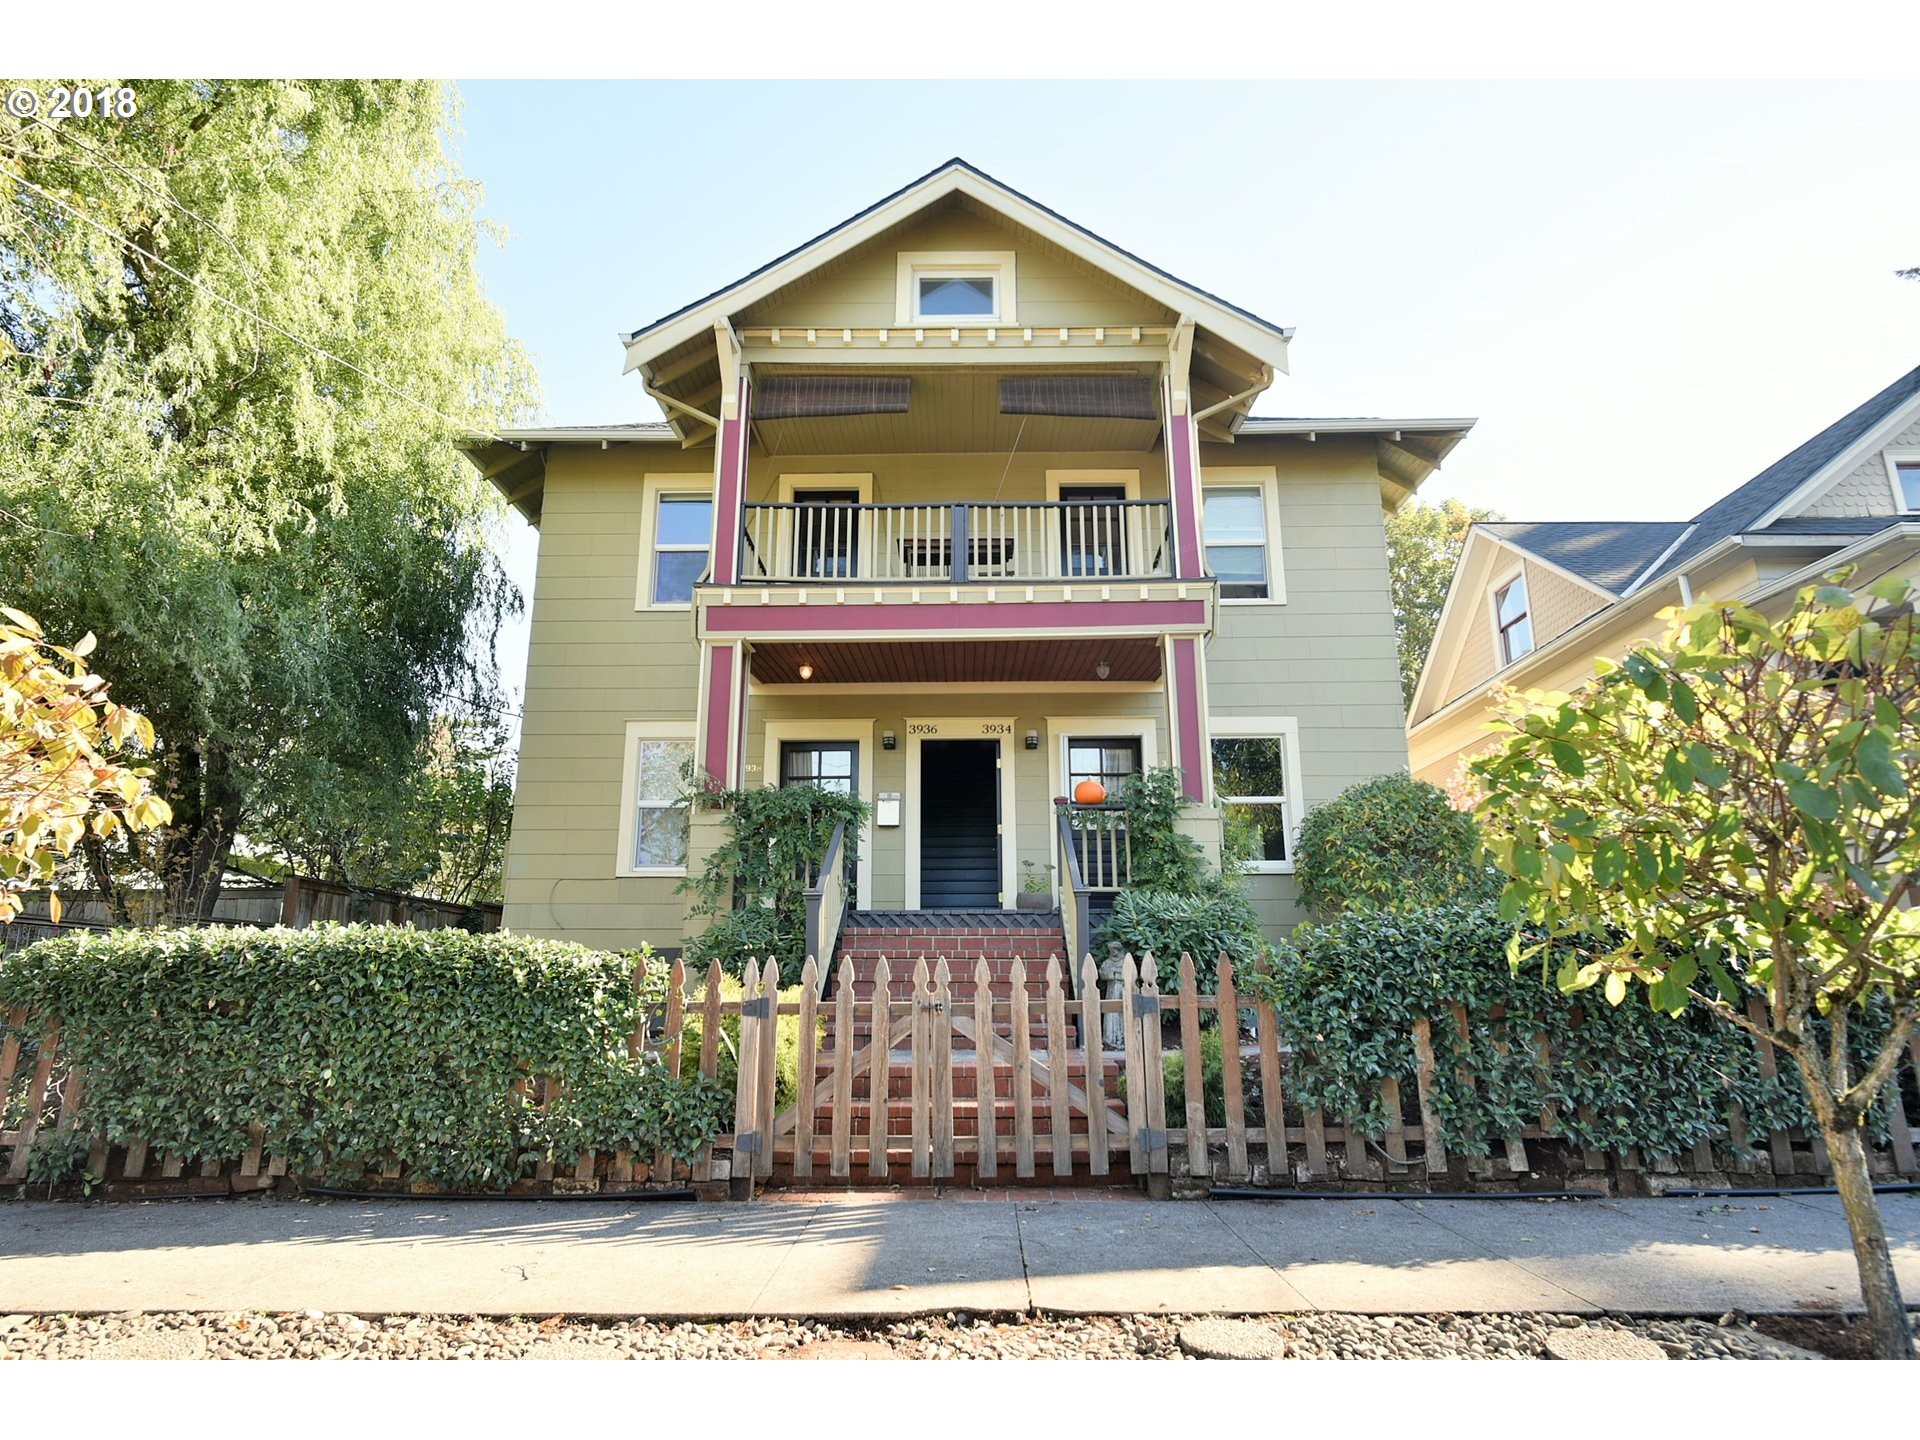 Photo for 3932 N ALBINA AVE, Portland, OR 97227 (MLS # 18433799)